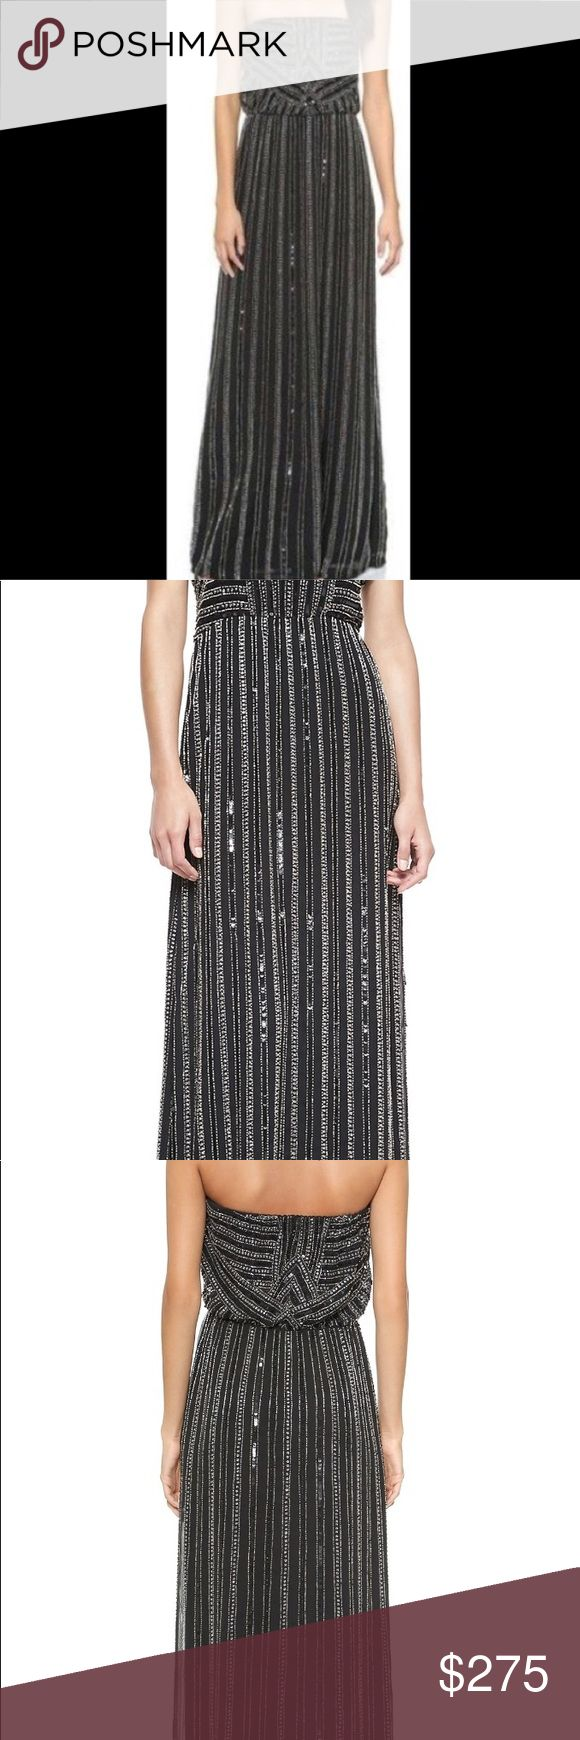 Parker Black Lovey Strapless Beaded Maxi Gown This strapless Parker maxi dress has intricate, beaded stripes, casting a luxurious tone on the elegant silhouette. Gathered elastic cinches the top and waist. 100% silk. Parker Dresses Maxi